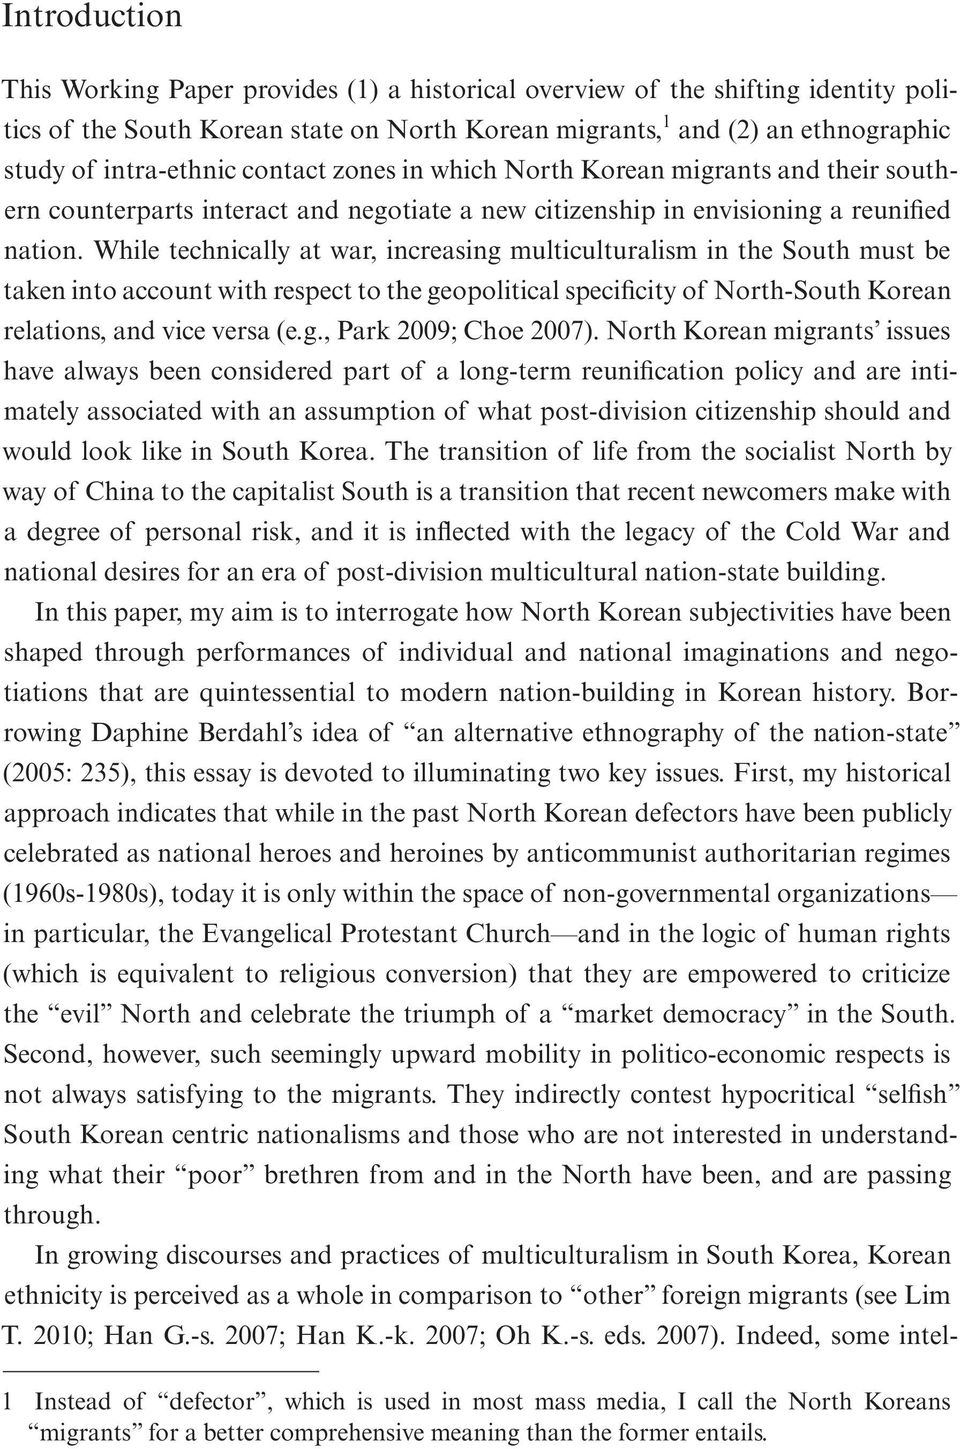 While technically at war, increasing multiculturalism in the South must be taken into account with respect to the geopolitical specificity of North-South Korean relations, and vice versa (e.g., Park 2009; Choe 2007).